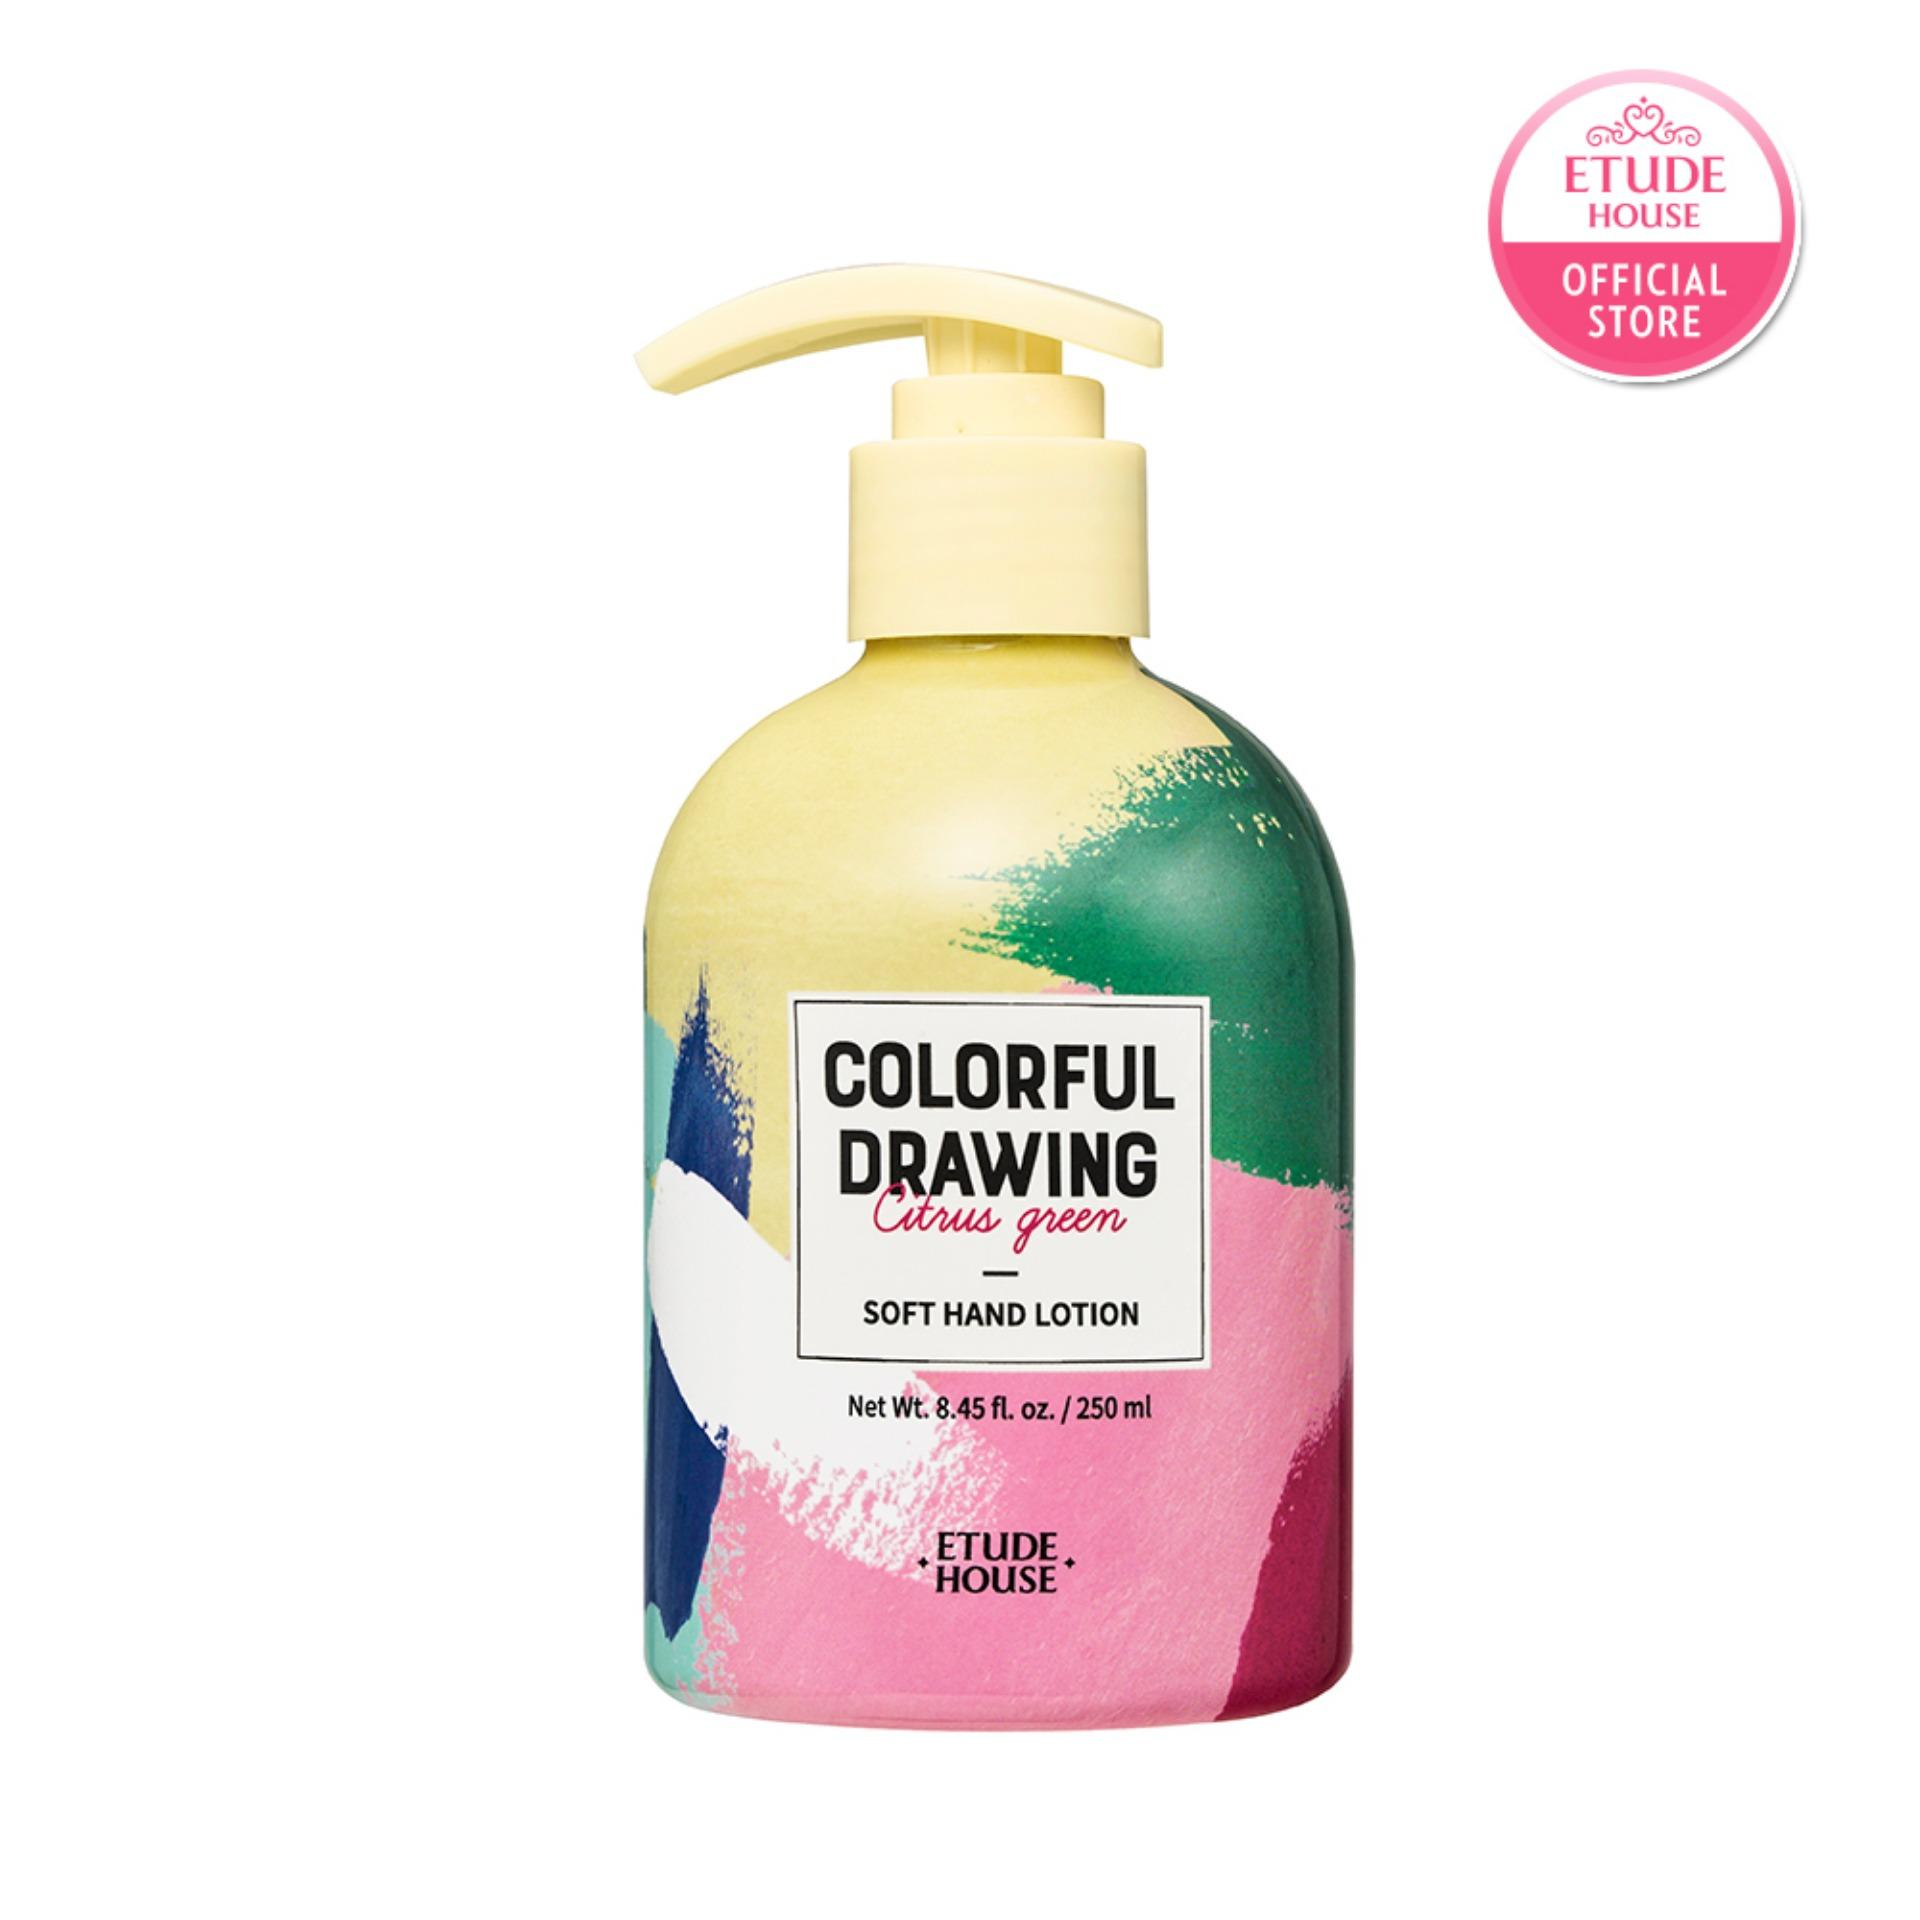 Best Rated Etude House Colorful Drawing Soft Hand Lotion